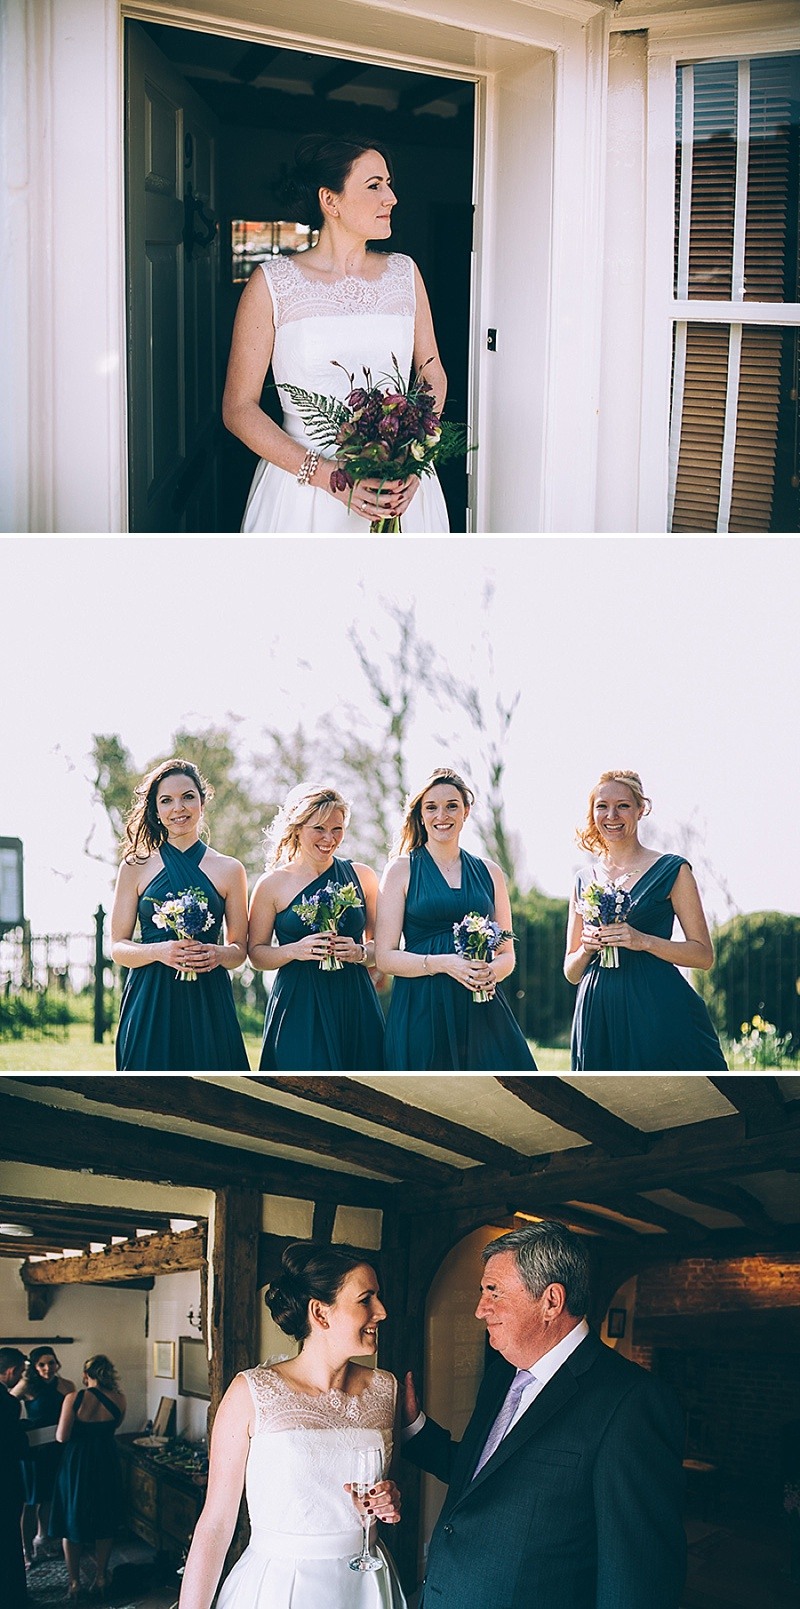 A wedding at Alpheton Hall Barns in Suffolk with a Jesus Peiro ballgown dress navy bridesmaids and DIY_0153